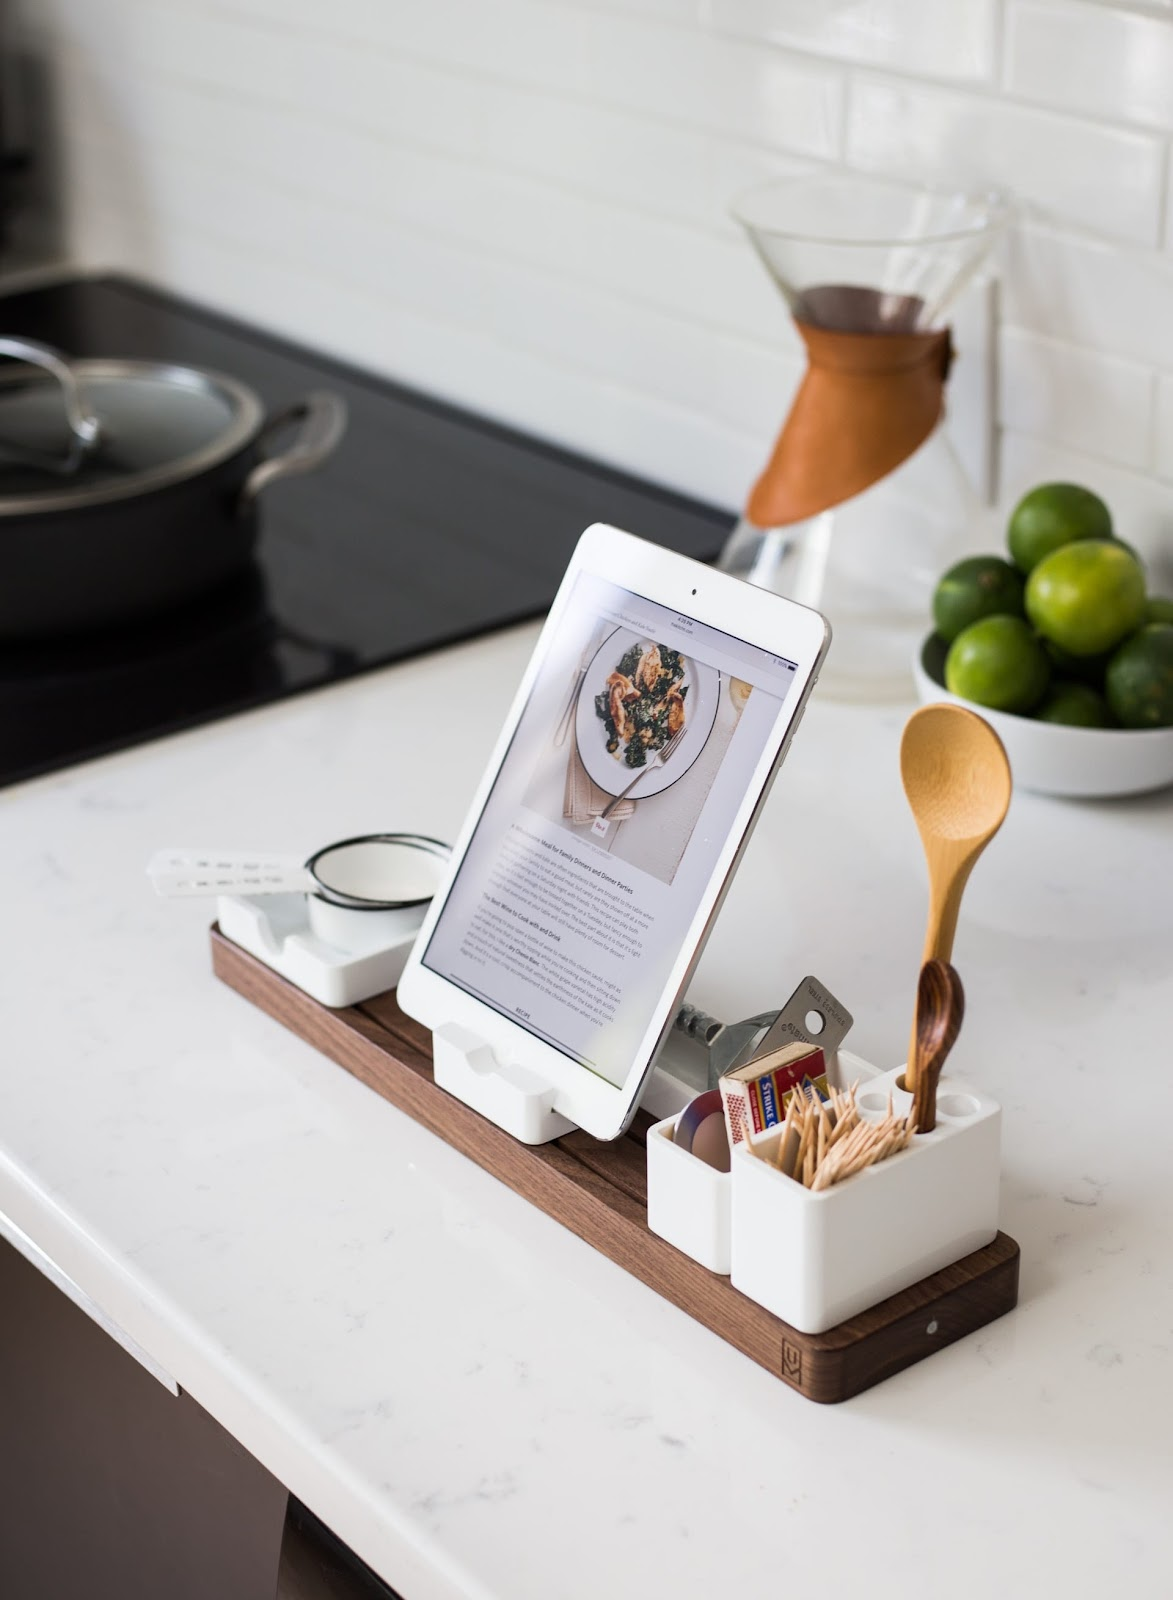 A recipe opened on a tab, placed on a stand on the kitchen counter